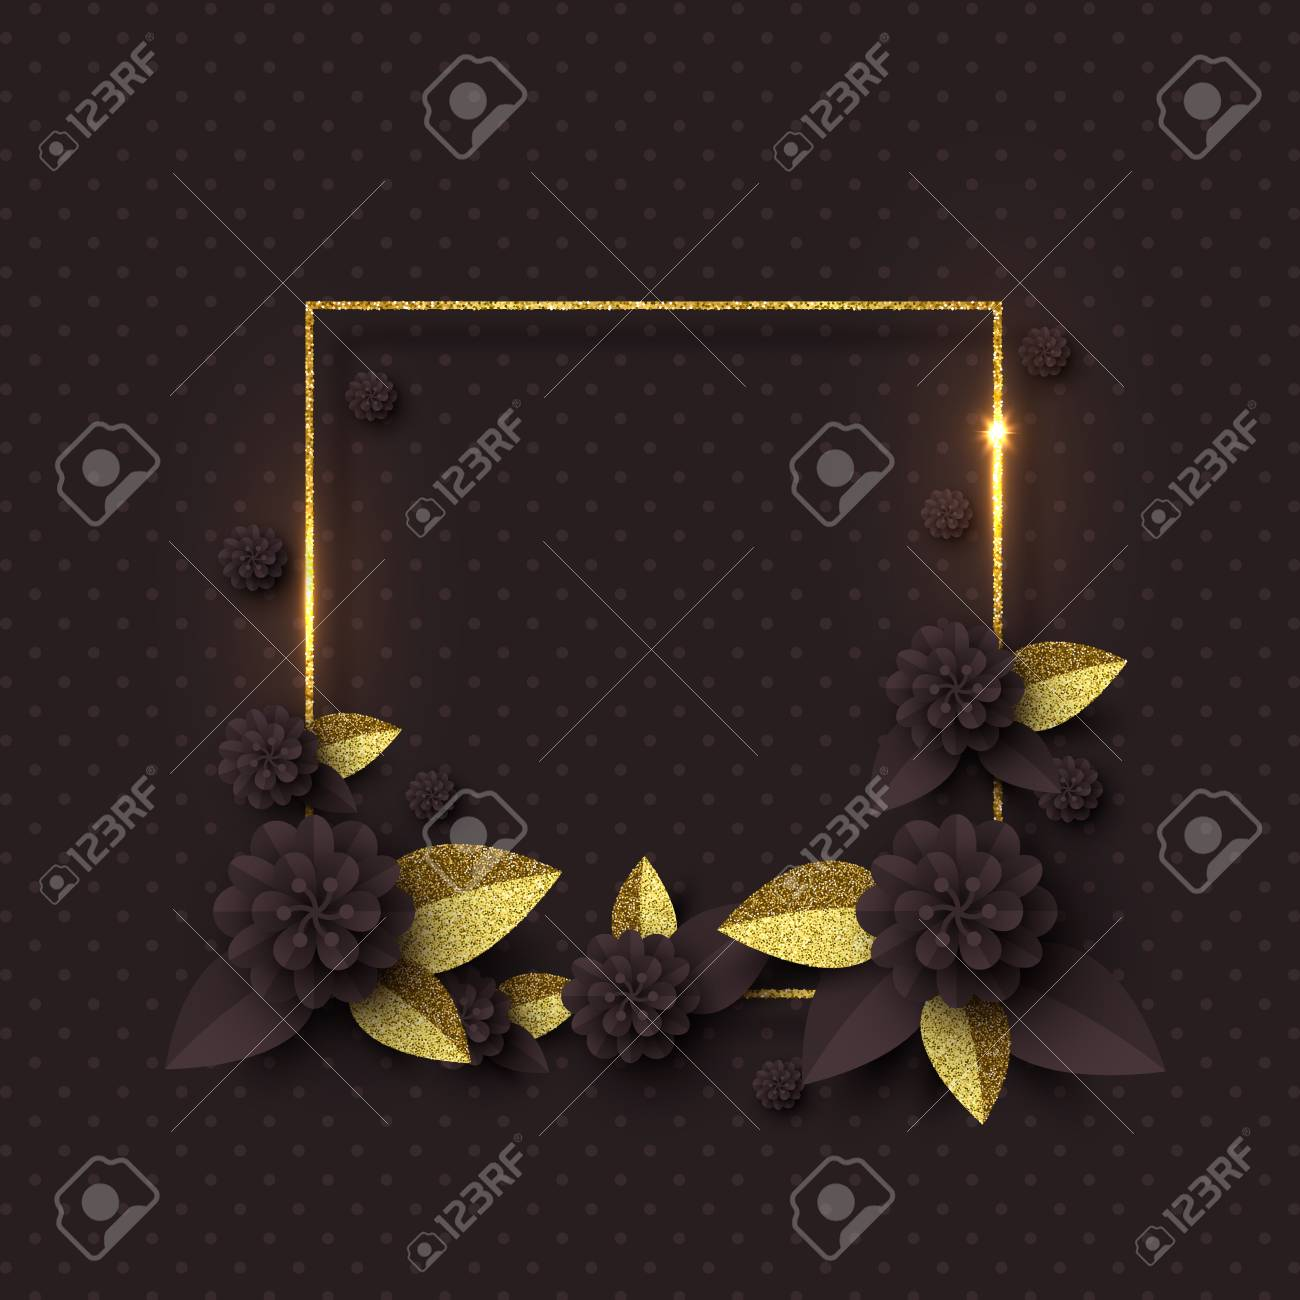 5fcc1c631a8 Paper Cut Flowers With Golden Glitter Leaves